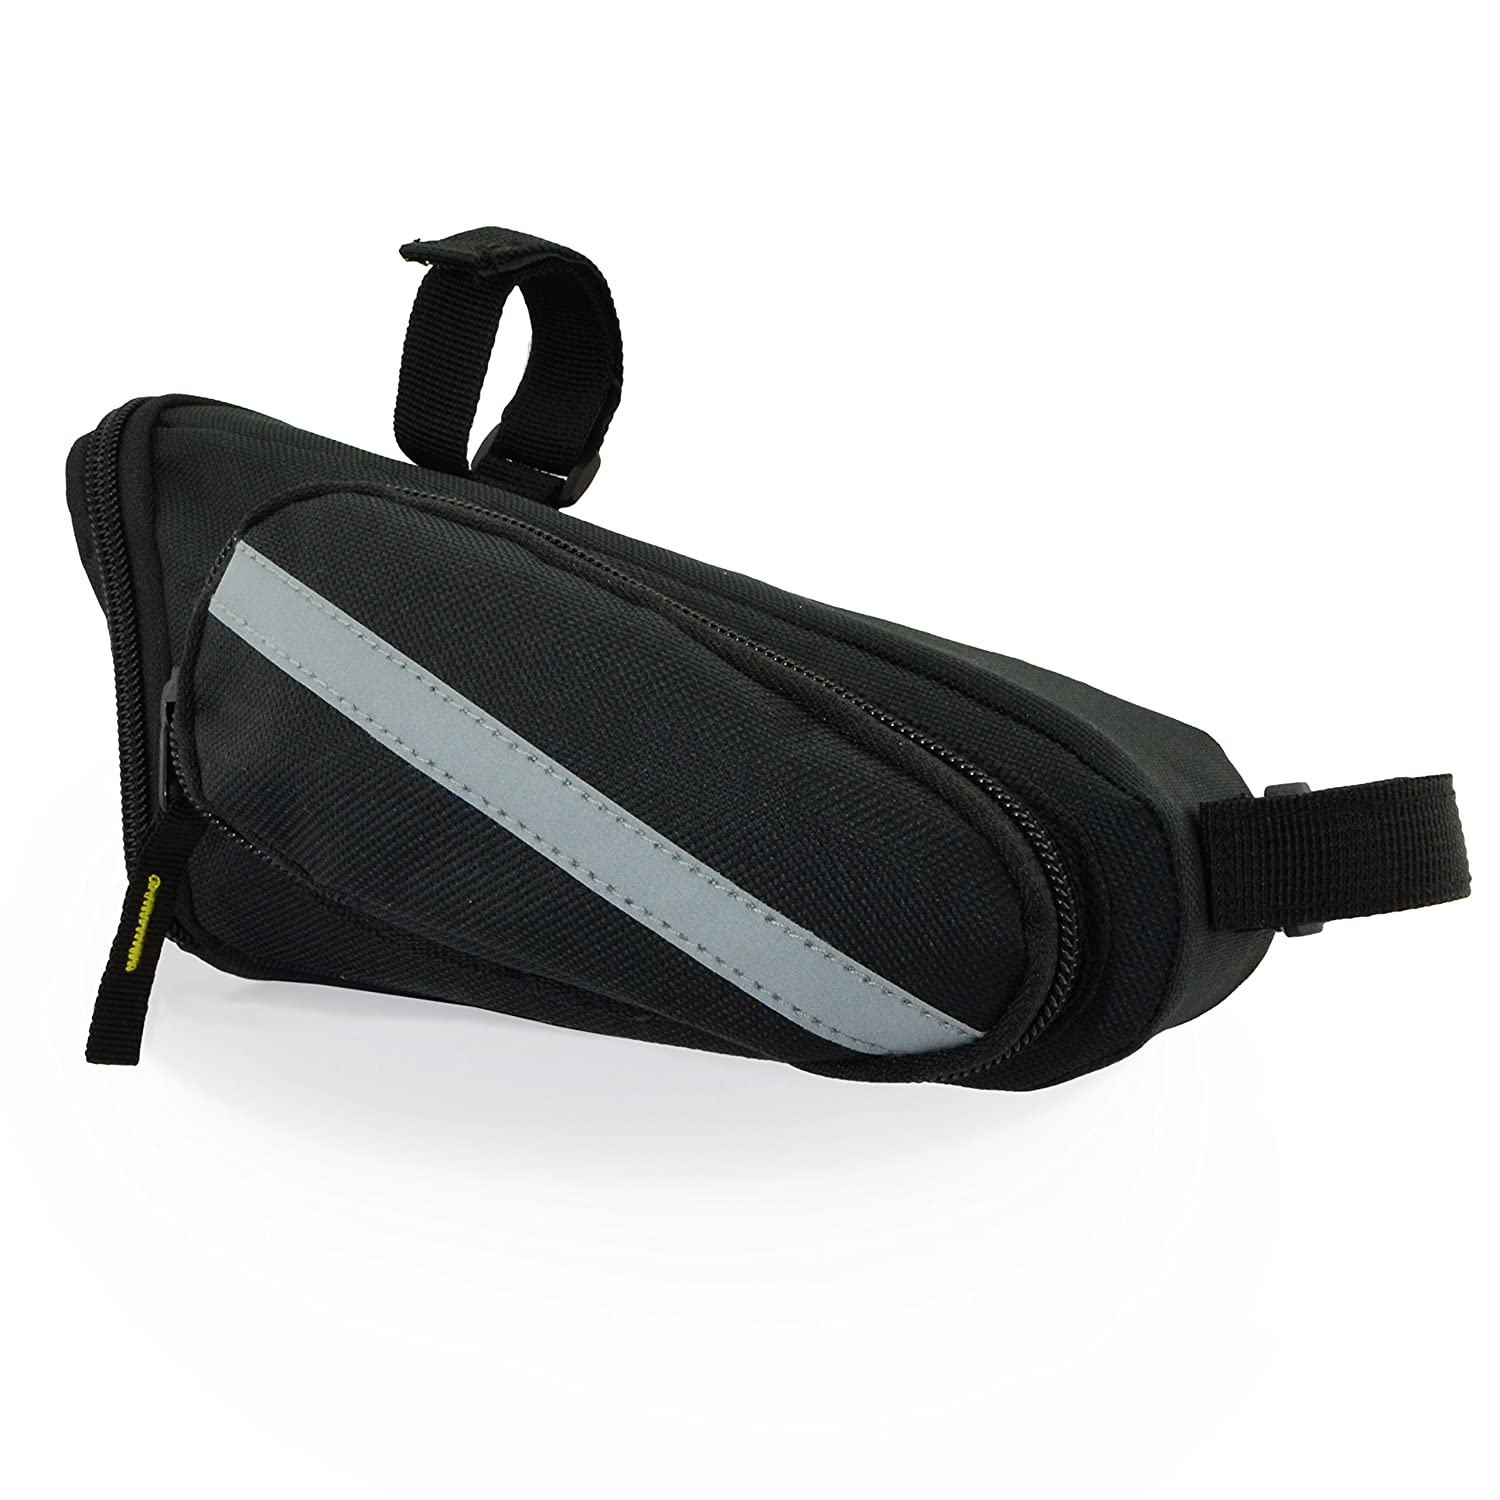 Lumintrail Strap-on Bike Saddle Bag Bicycle Cycling Under Seat Pack Medium or Large